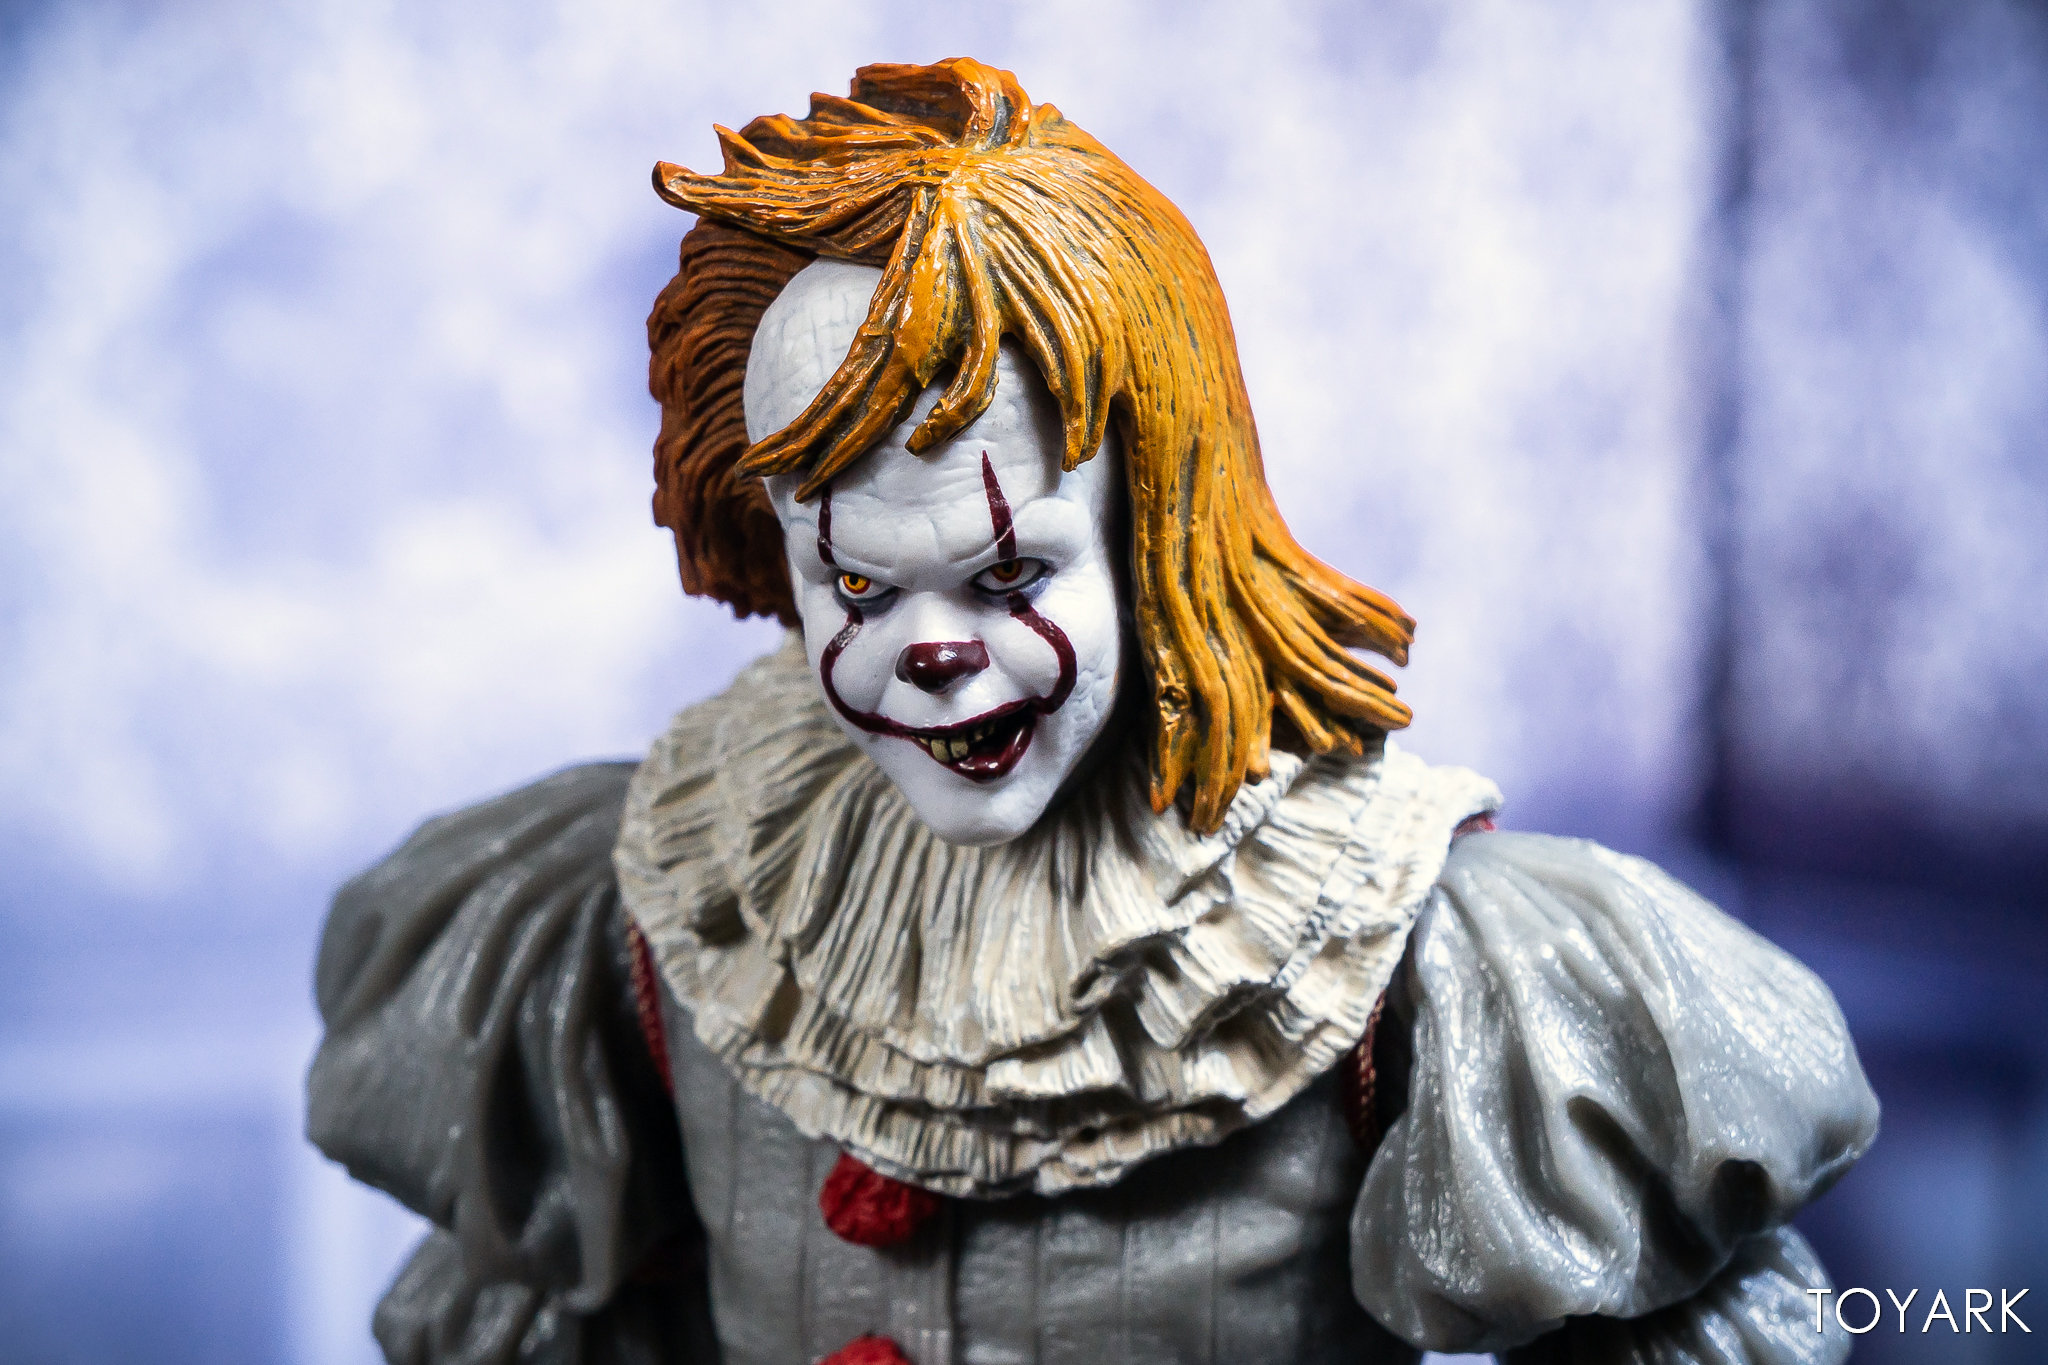 https://news.toyark.com/wp-content/uploads/sites/4/2019/03/Well-House-Pennywise-Gallery-022.jpg